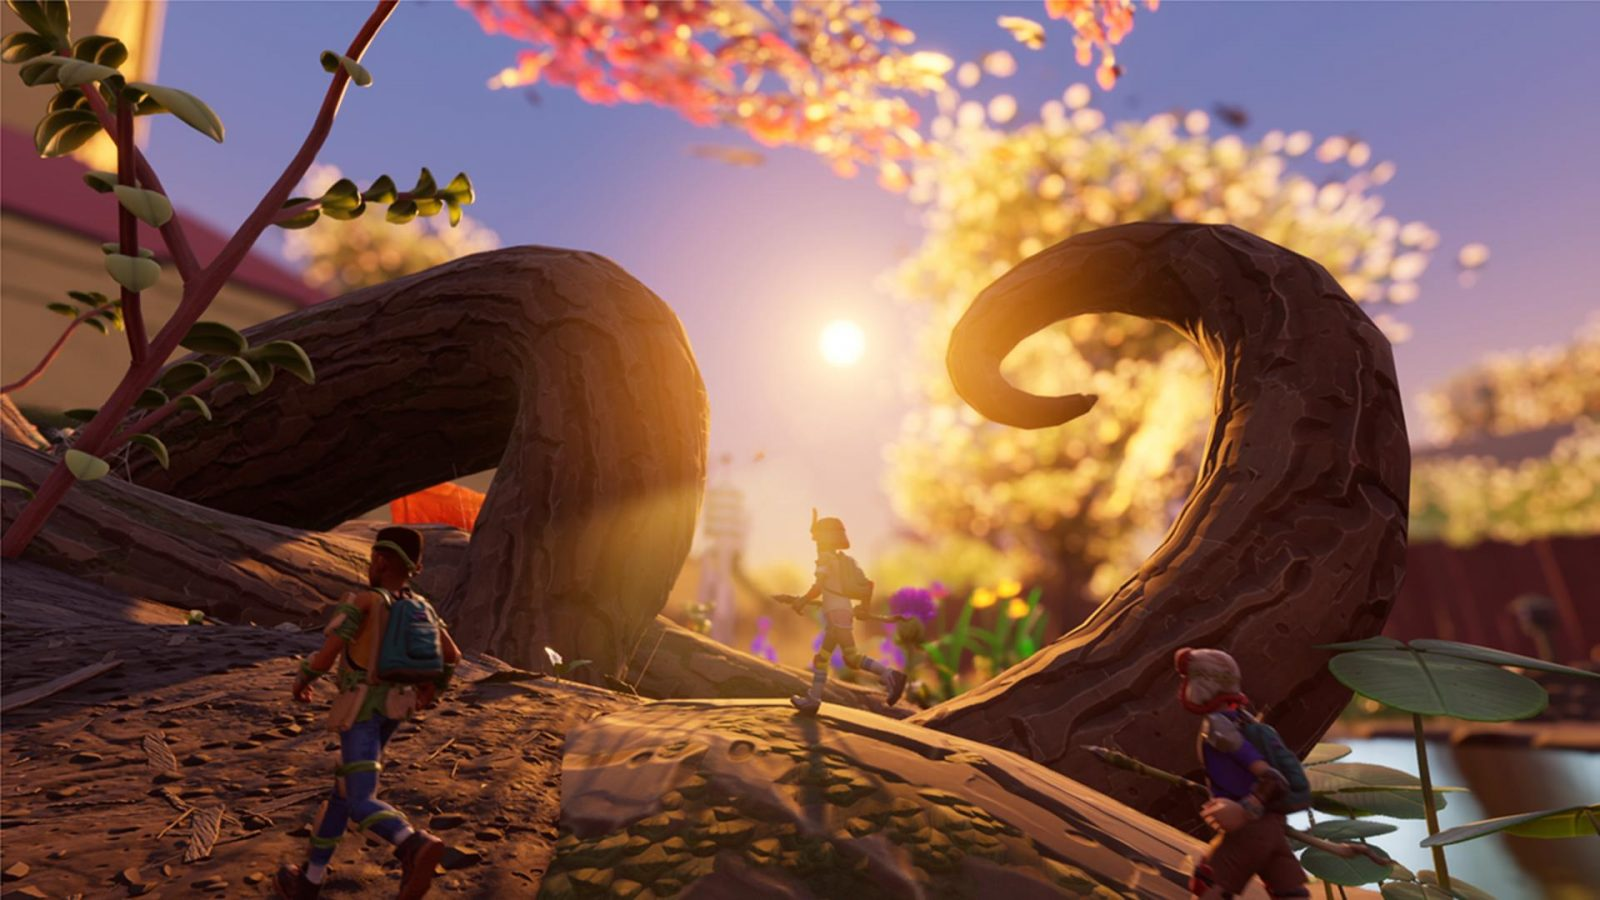 Obsidian's First Microsoft Exclusive is Minecraft Meets Honey, I Shrunk the Kids